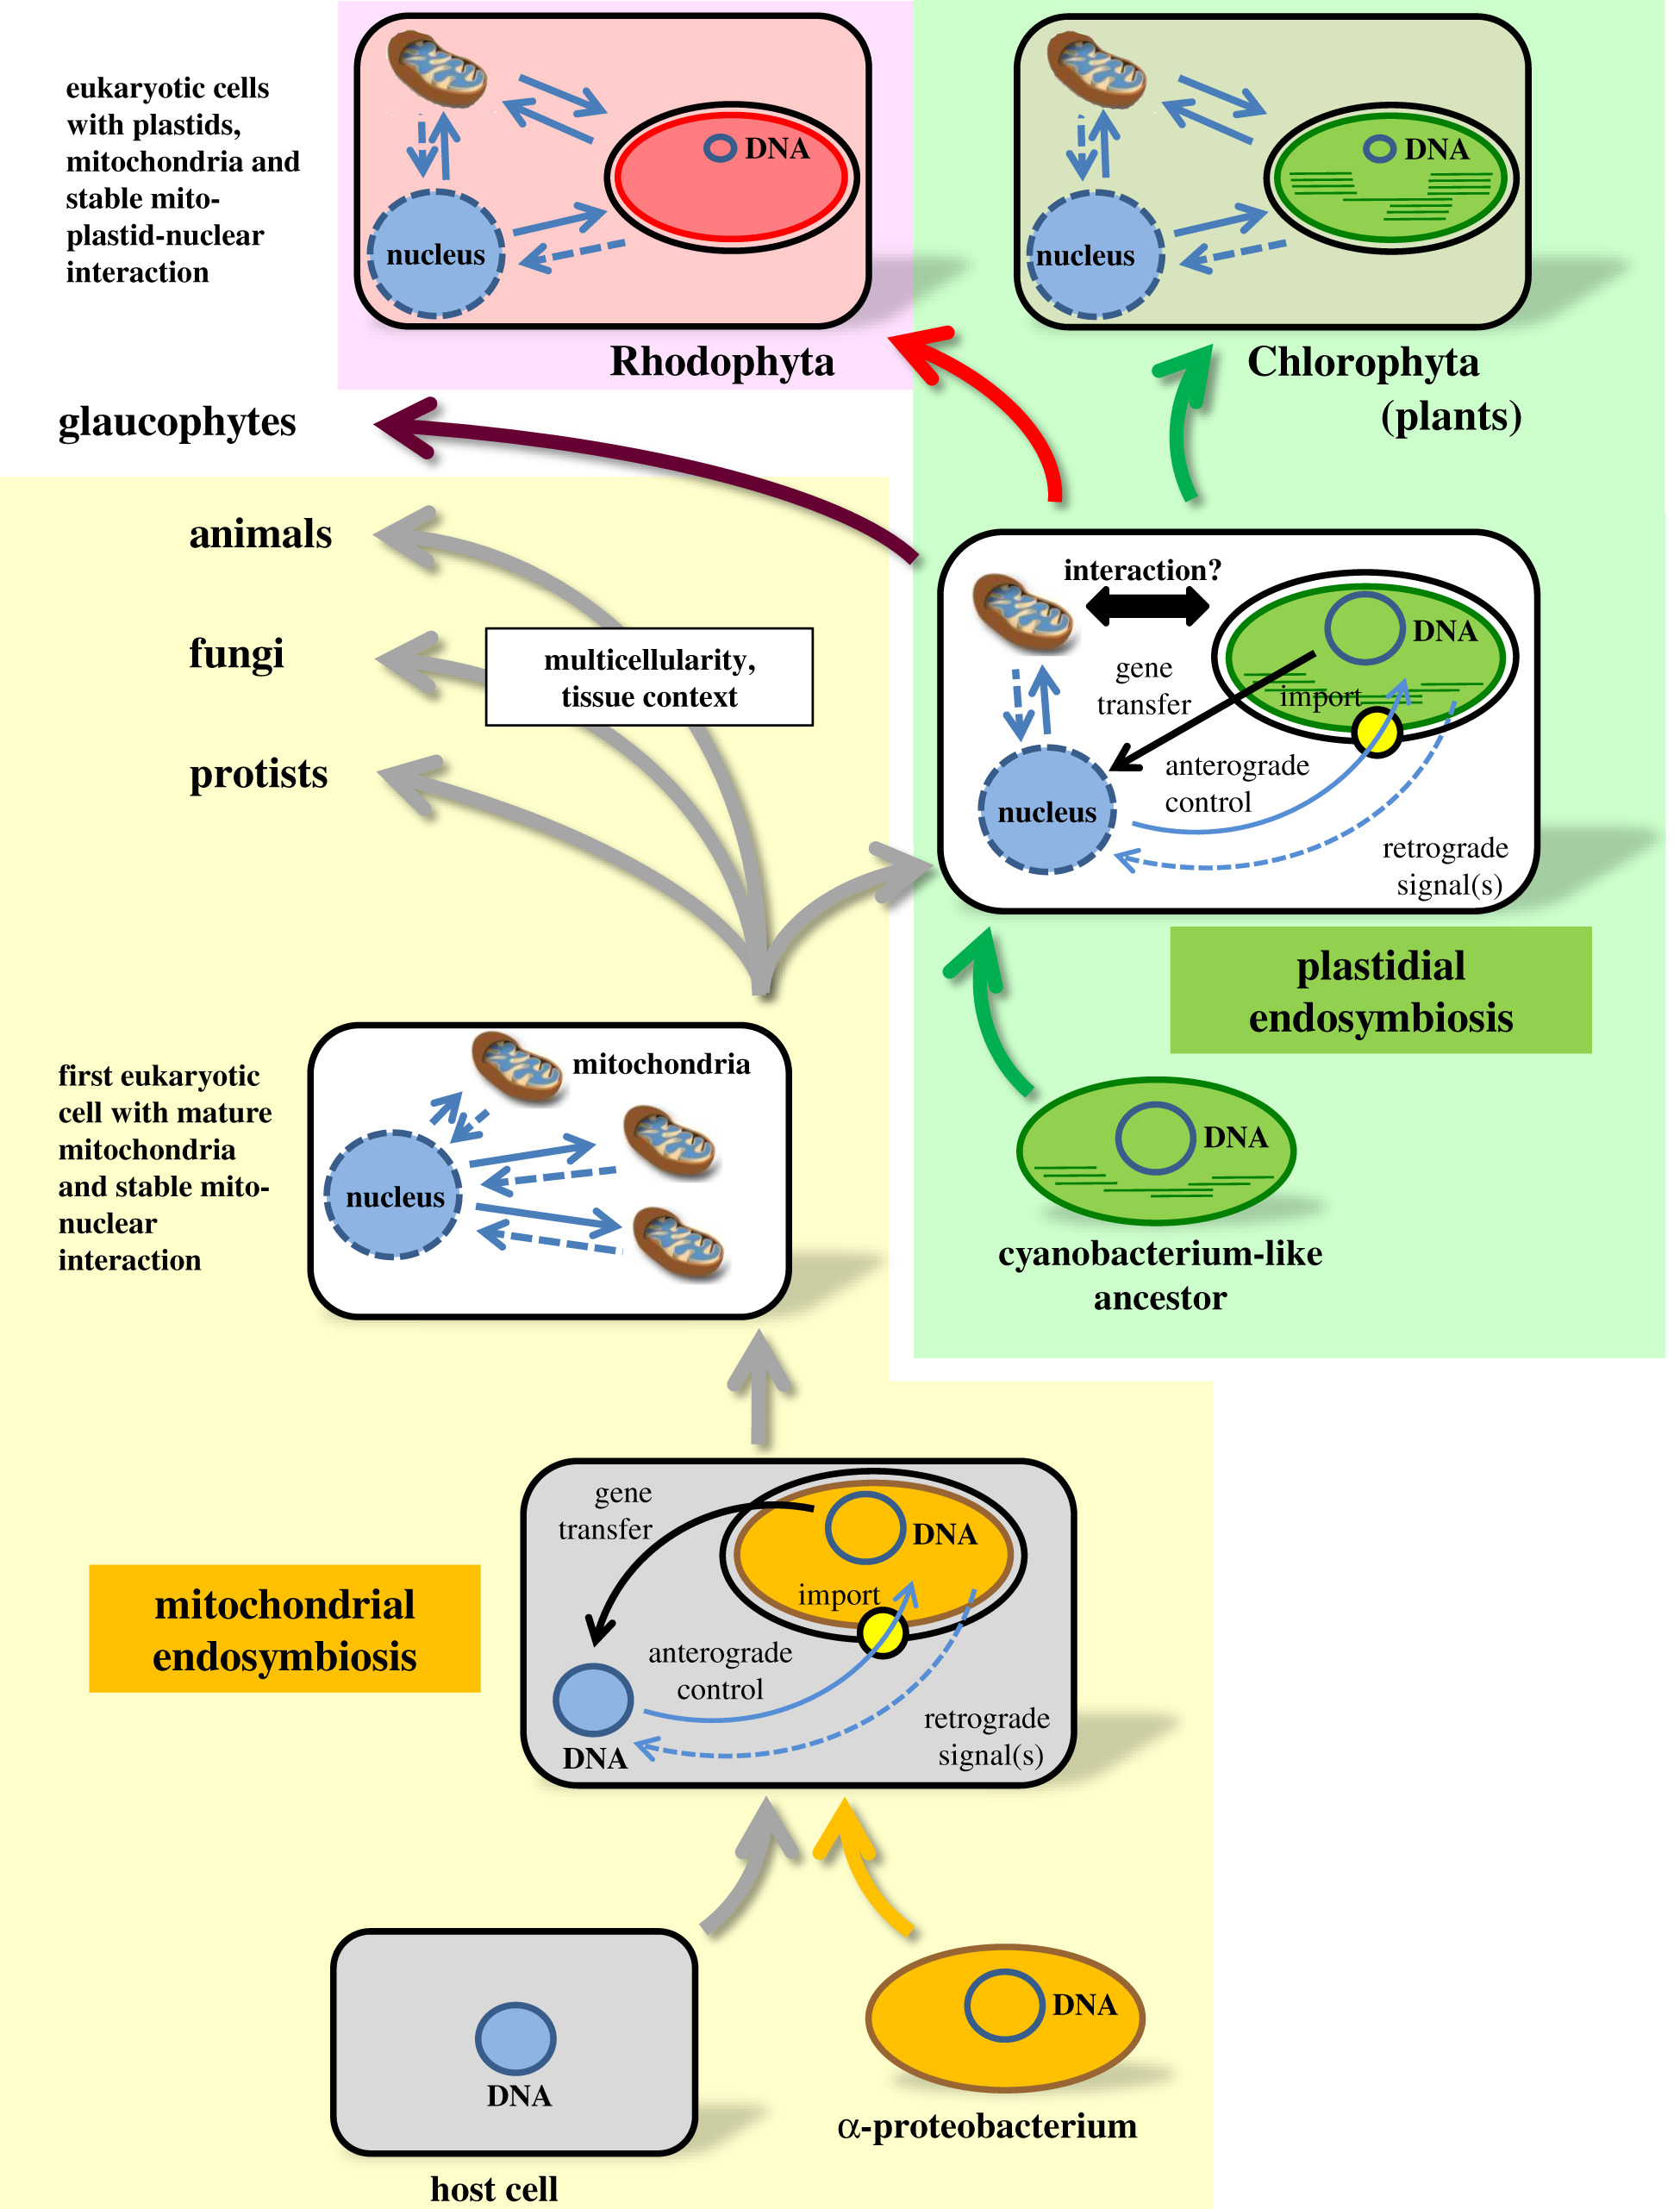 Retrograde Signals From Endosymbiotic Organelles A Common Control Principle In Eukaryotic Cells Philosophical Transactions Of The Royal Society B Biological Sciences